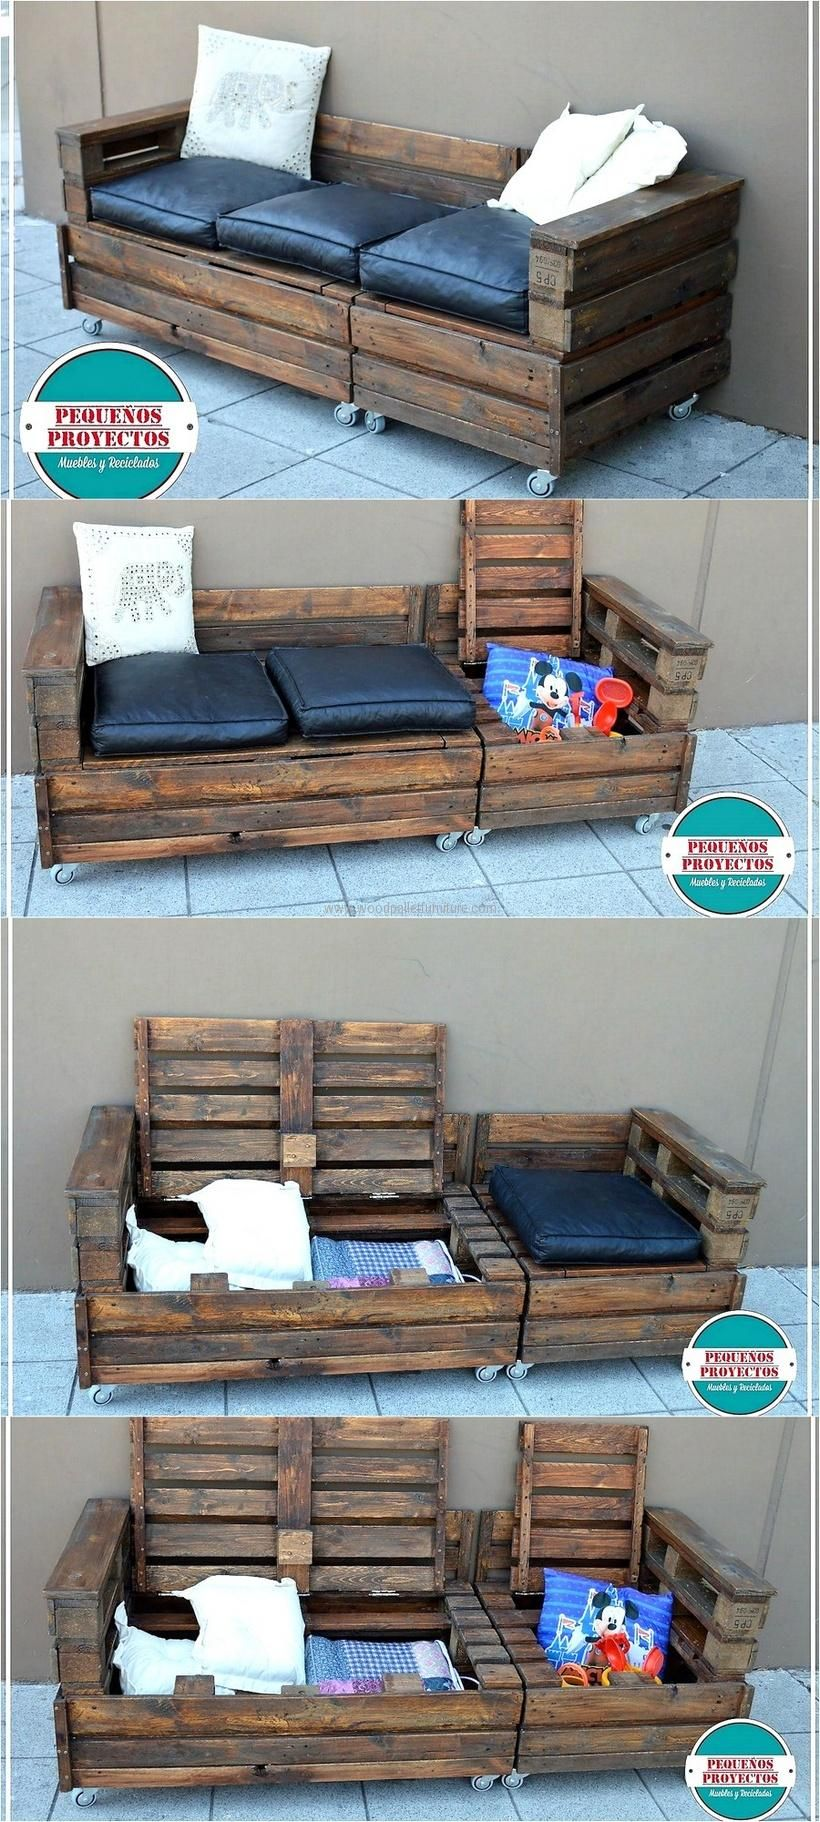 The reshaping wood pallet ideas with the storage option are the